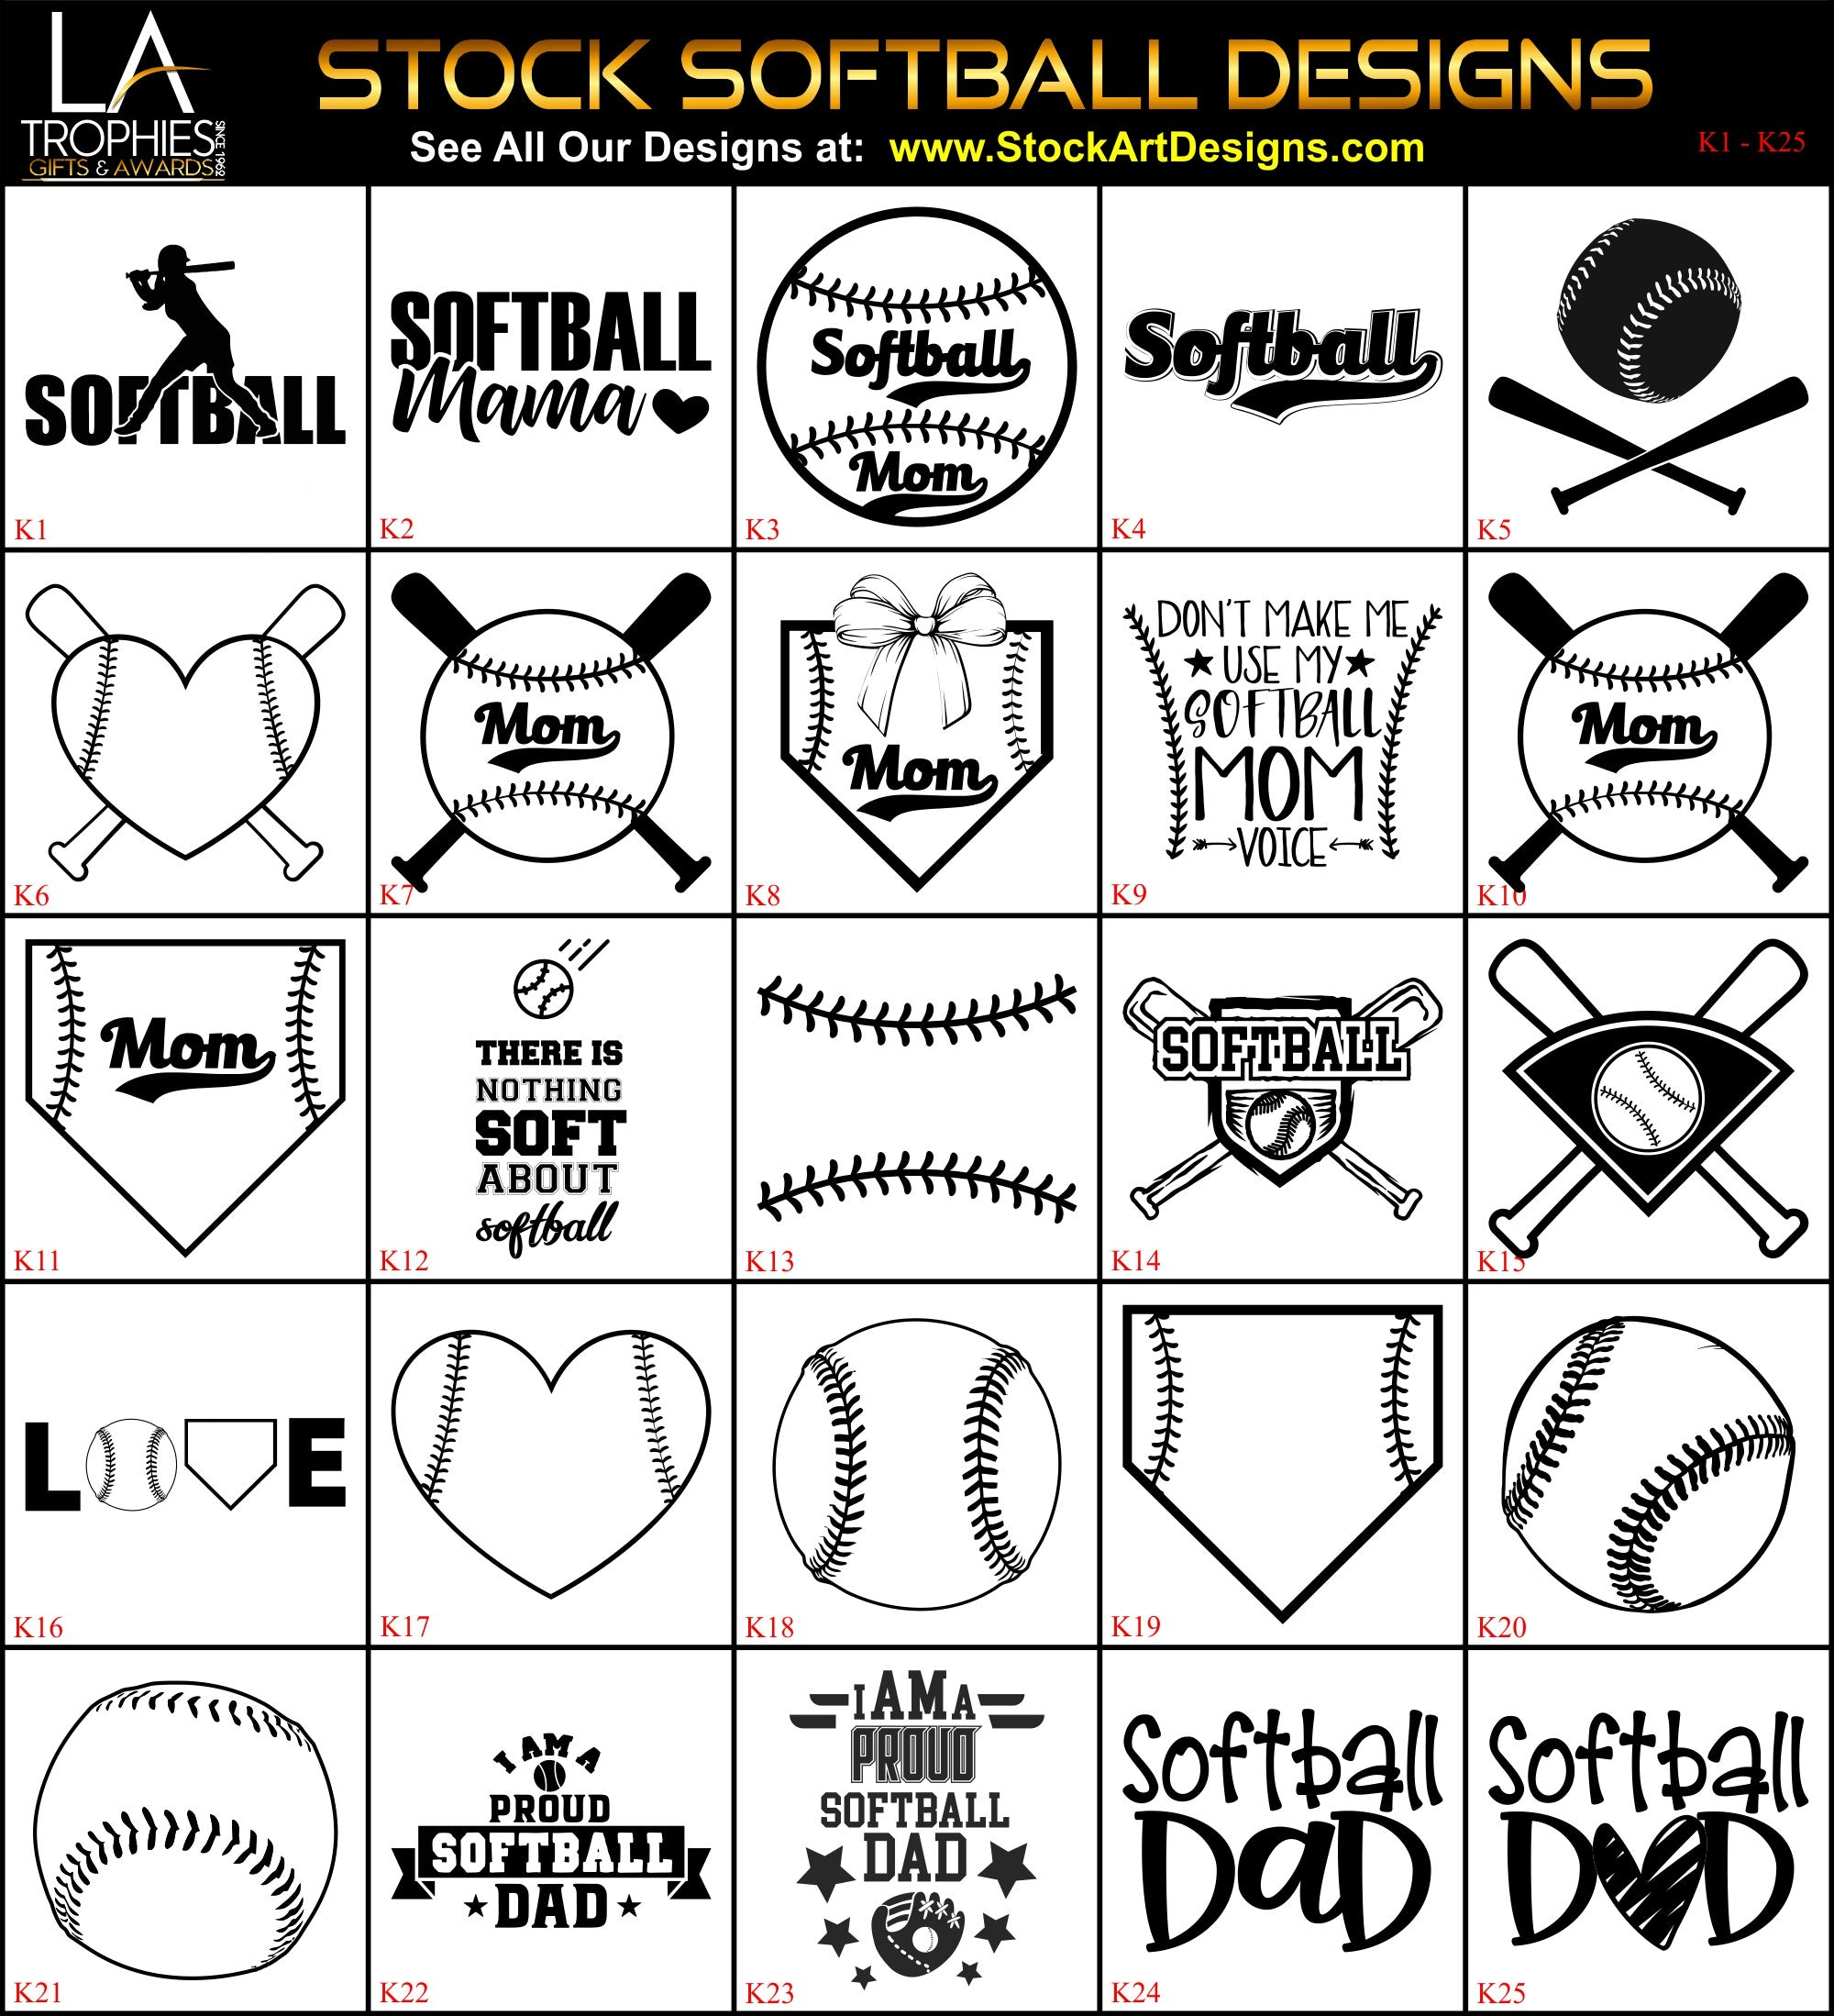 K1-K25 Stock Softball Designs for Laser Engraving LA Trophies